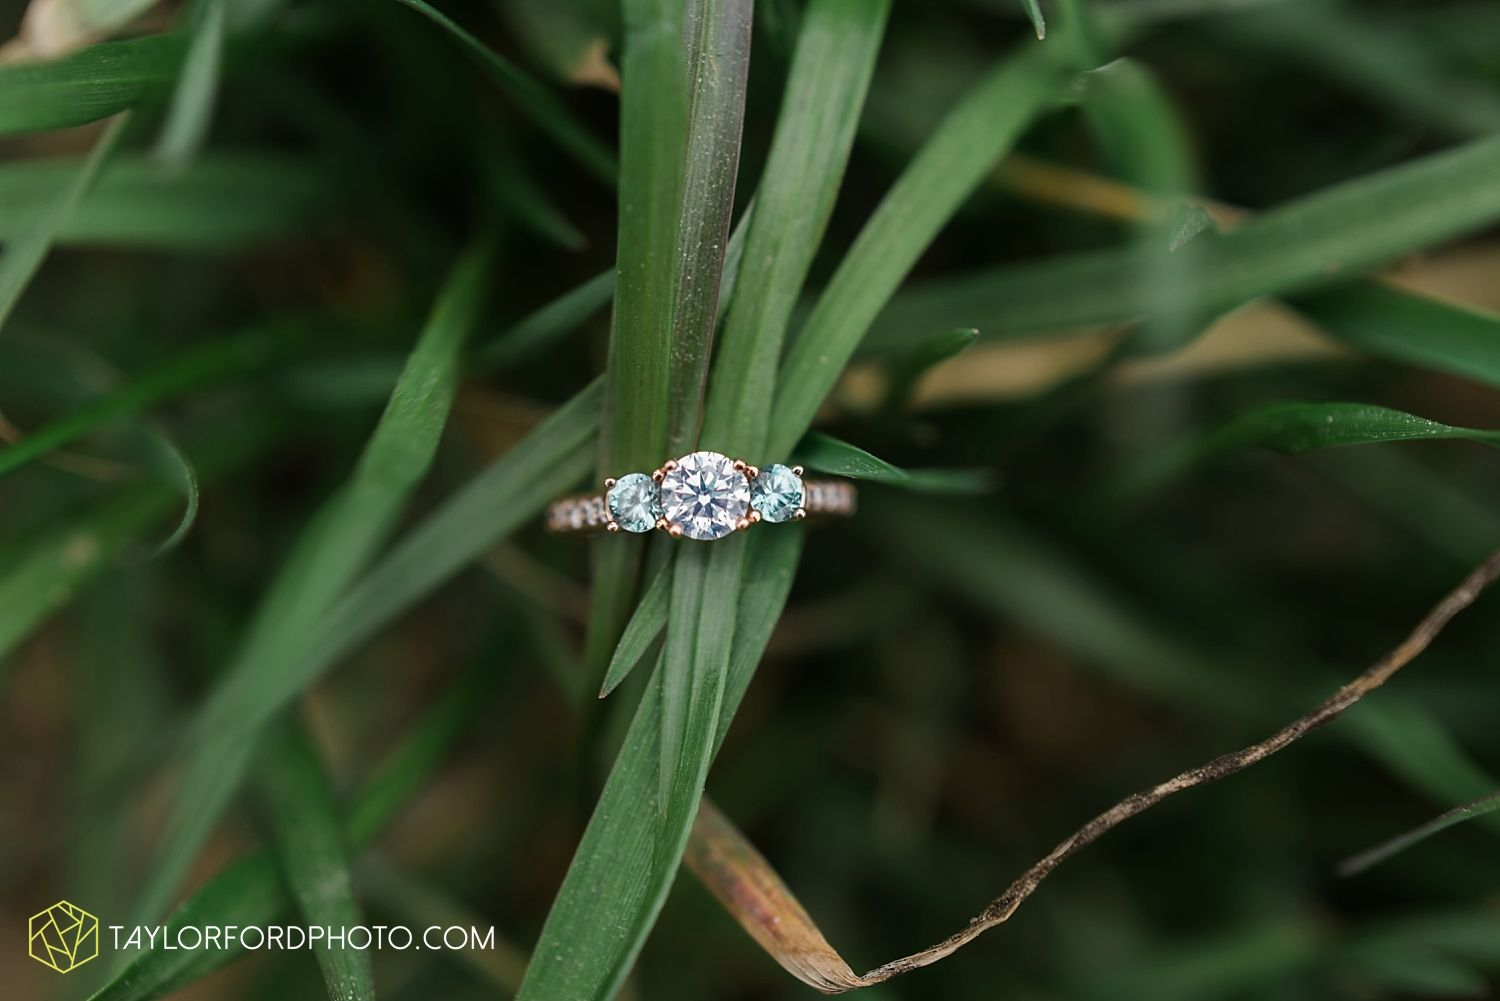 Fort Wayne Engagement Photographer | Engagement ring | Taylor Ford | www.taylorfordphoto.com